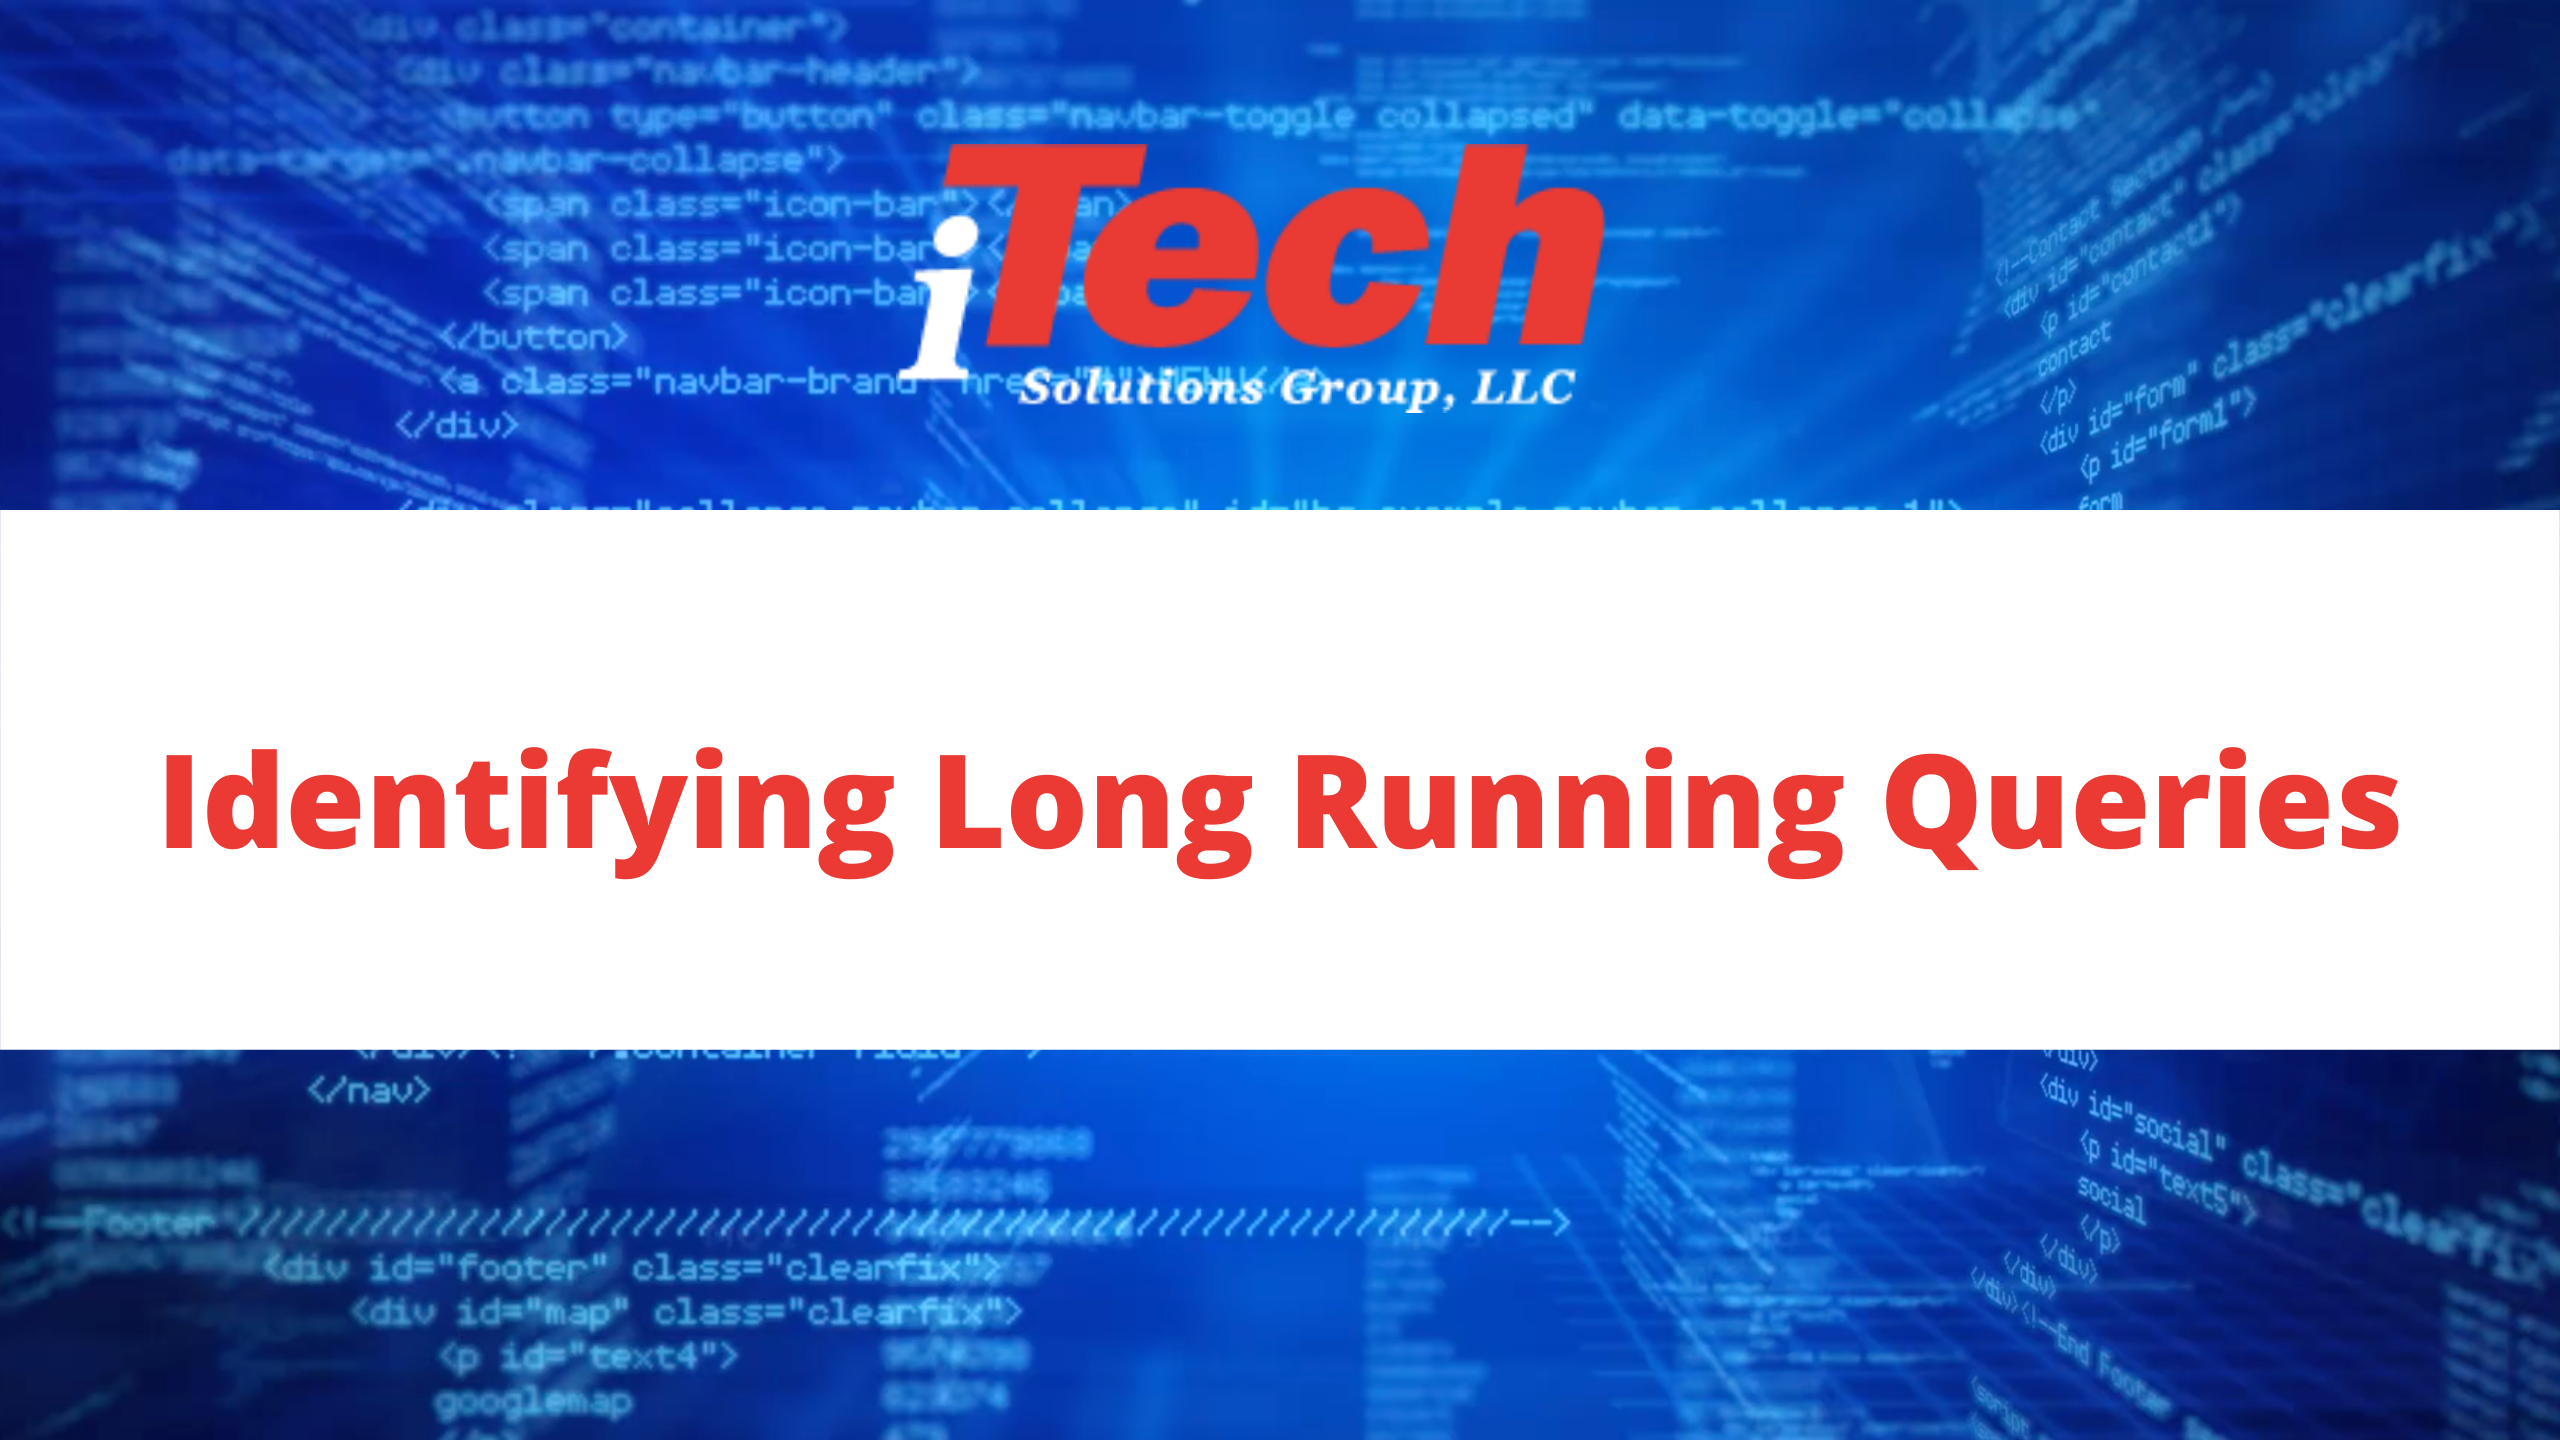 Identifying Long Running Queries